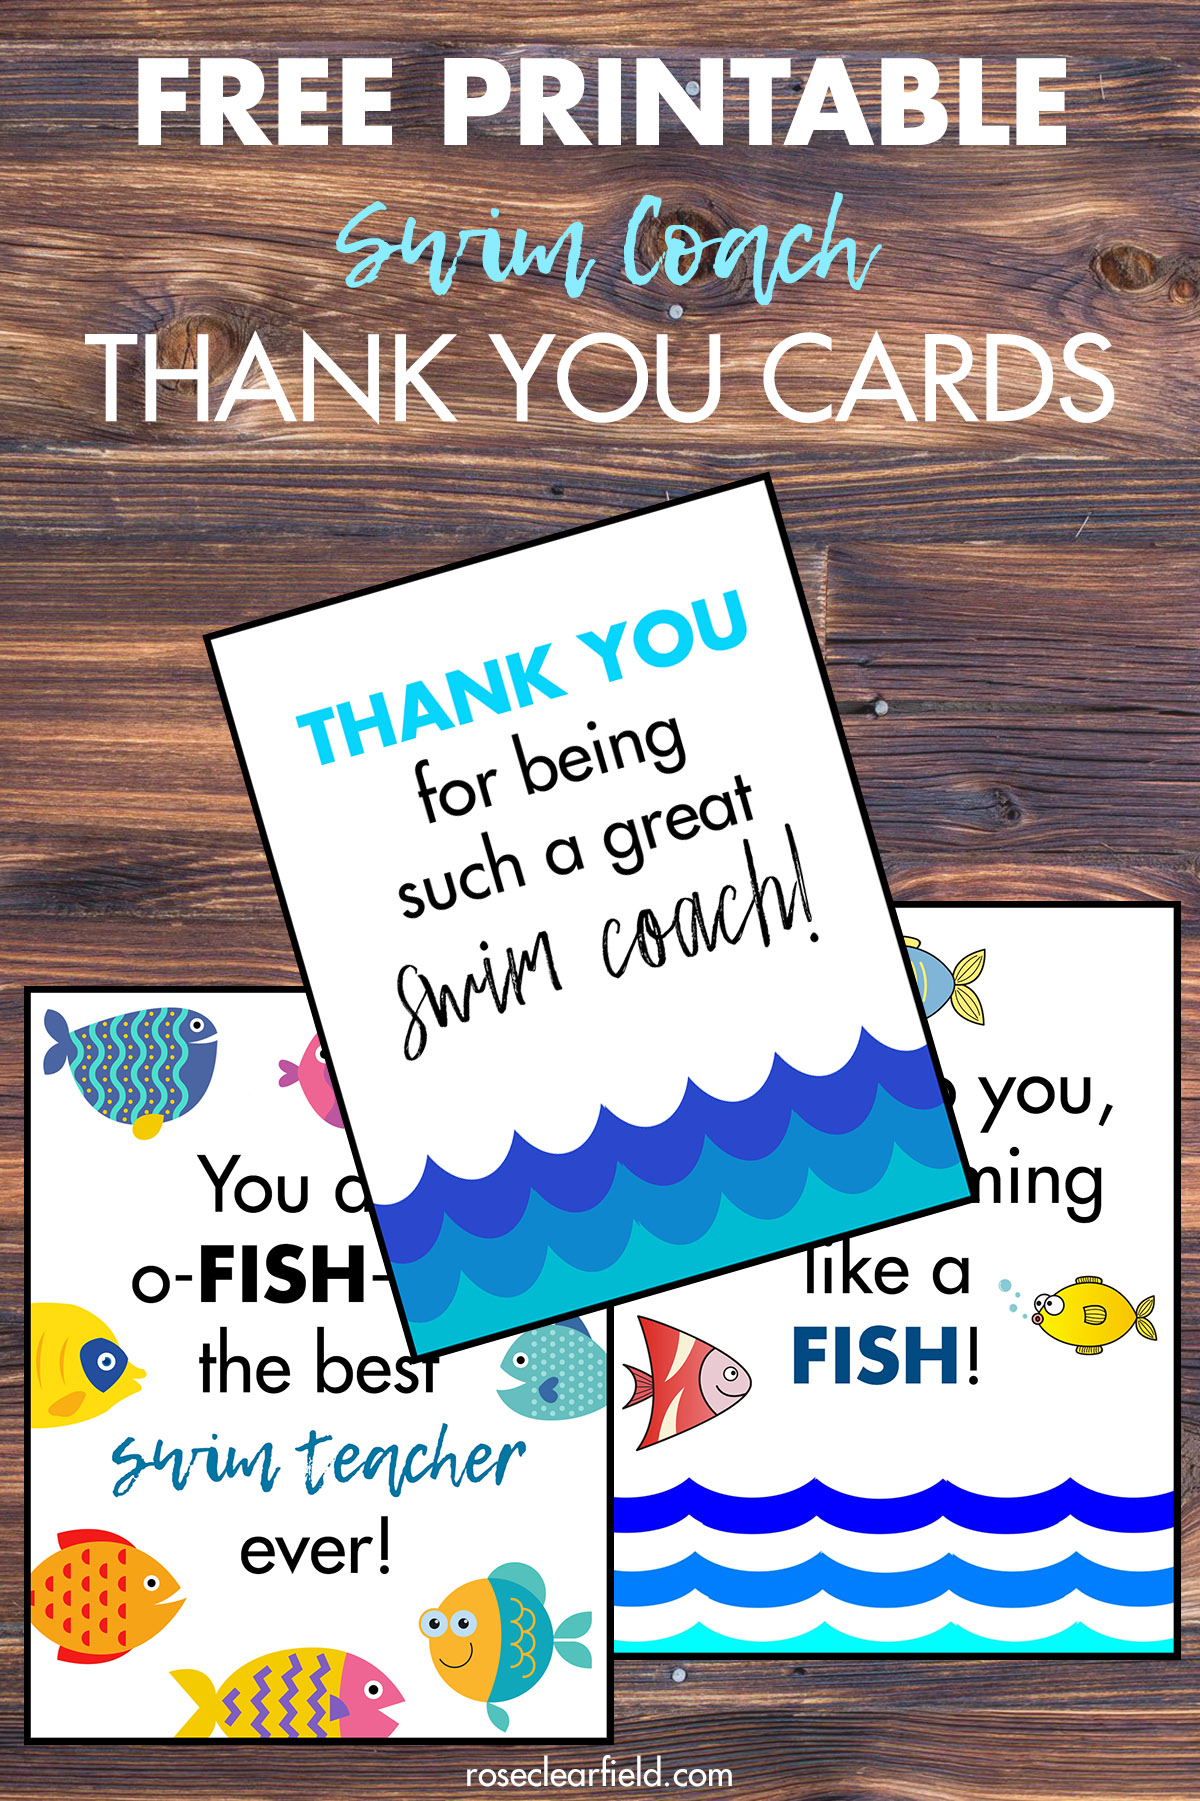 Coach Thank You Cards : coach, thank, cards, Printable, Coach, Thank, Cards, Clearfield